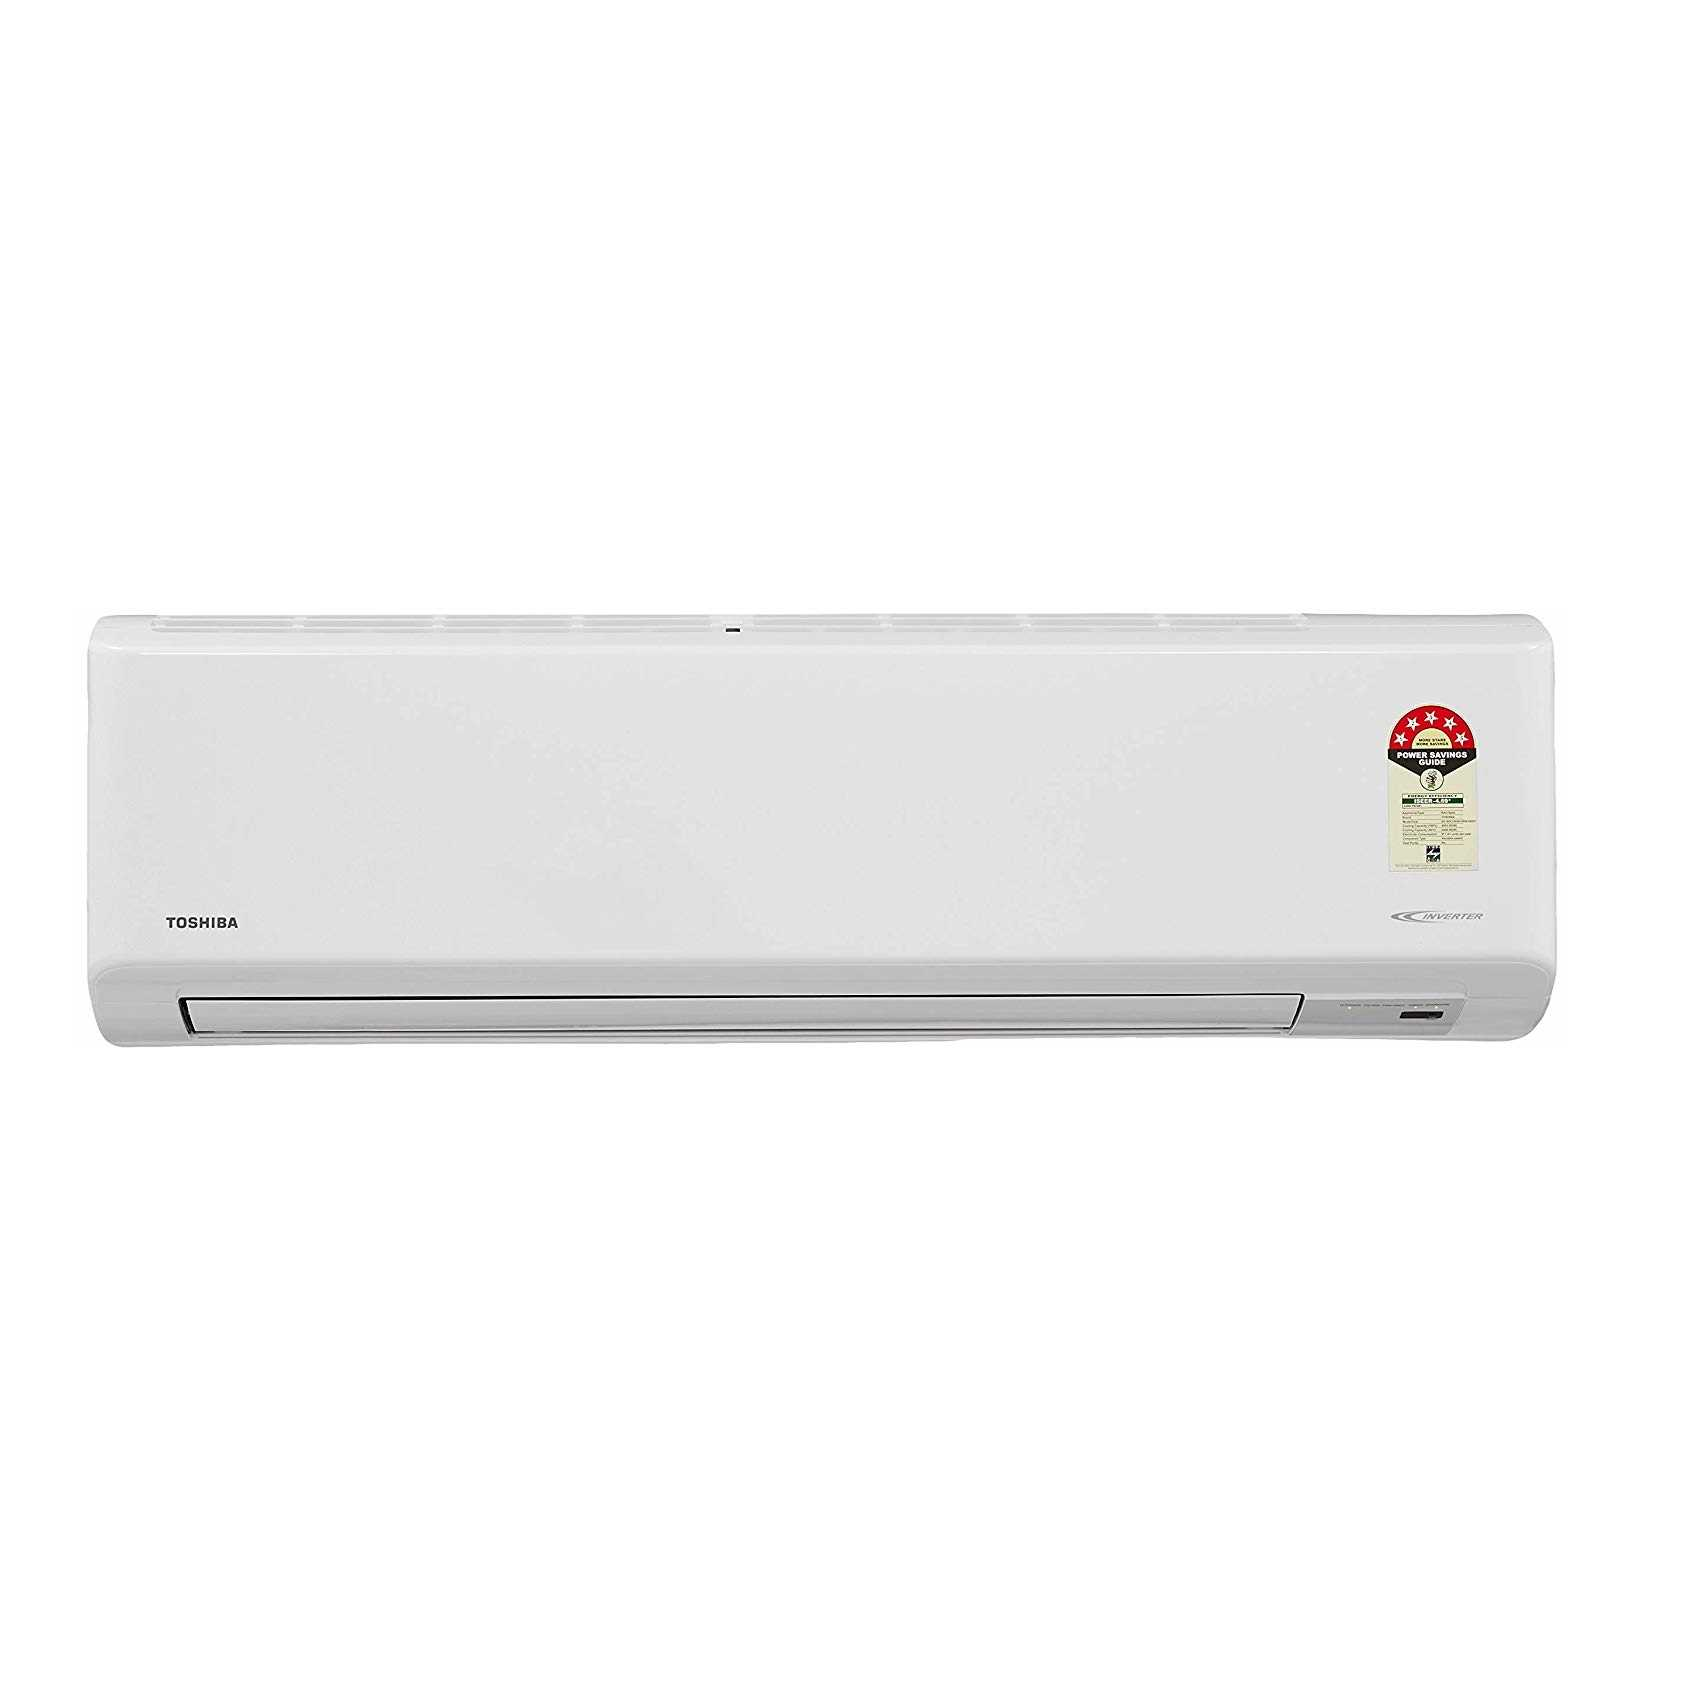 Toshiba RAS 18N3KCV IN 1.5 Ton 5 Star Inverter Split AC